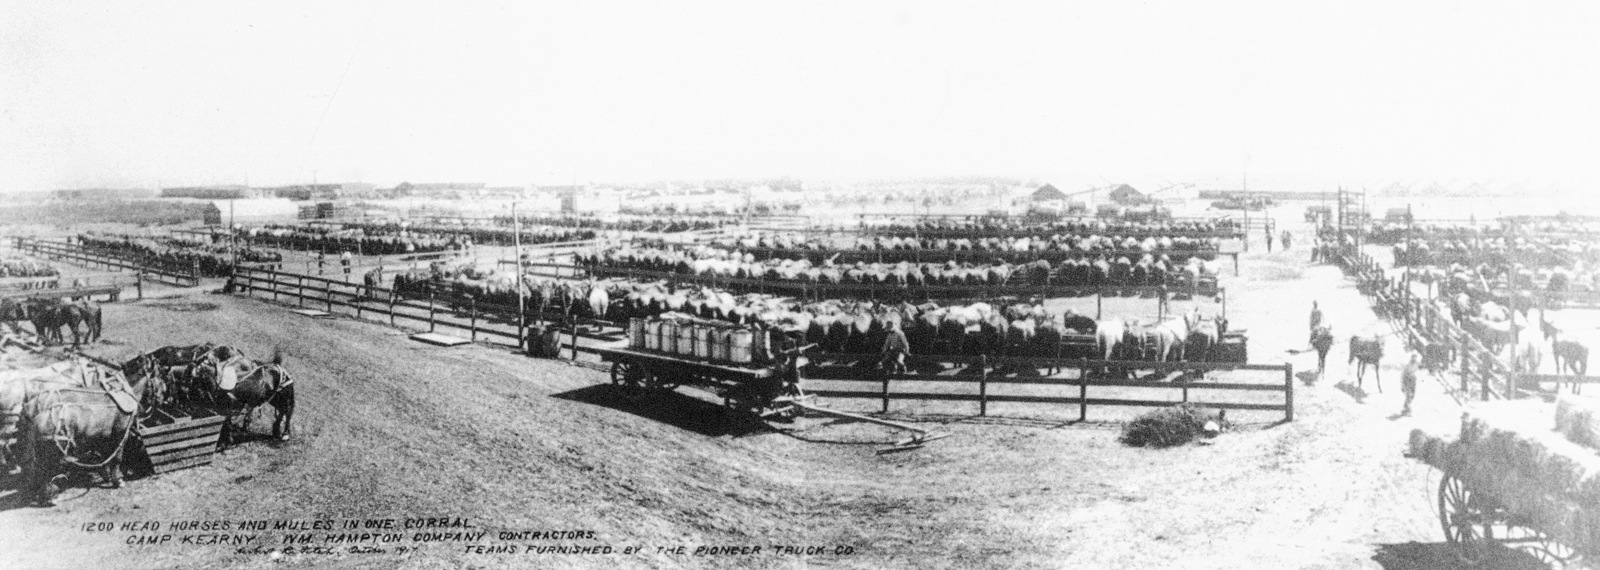 An overview of 1200 head of horses and mules in one corral at Camp Kearny, California (CA). The teams furnished by the Pioneer Trucking Company. Note: In the future this area became the US Navy (USN) Naval Air Station Miramar